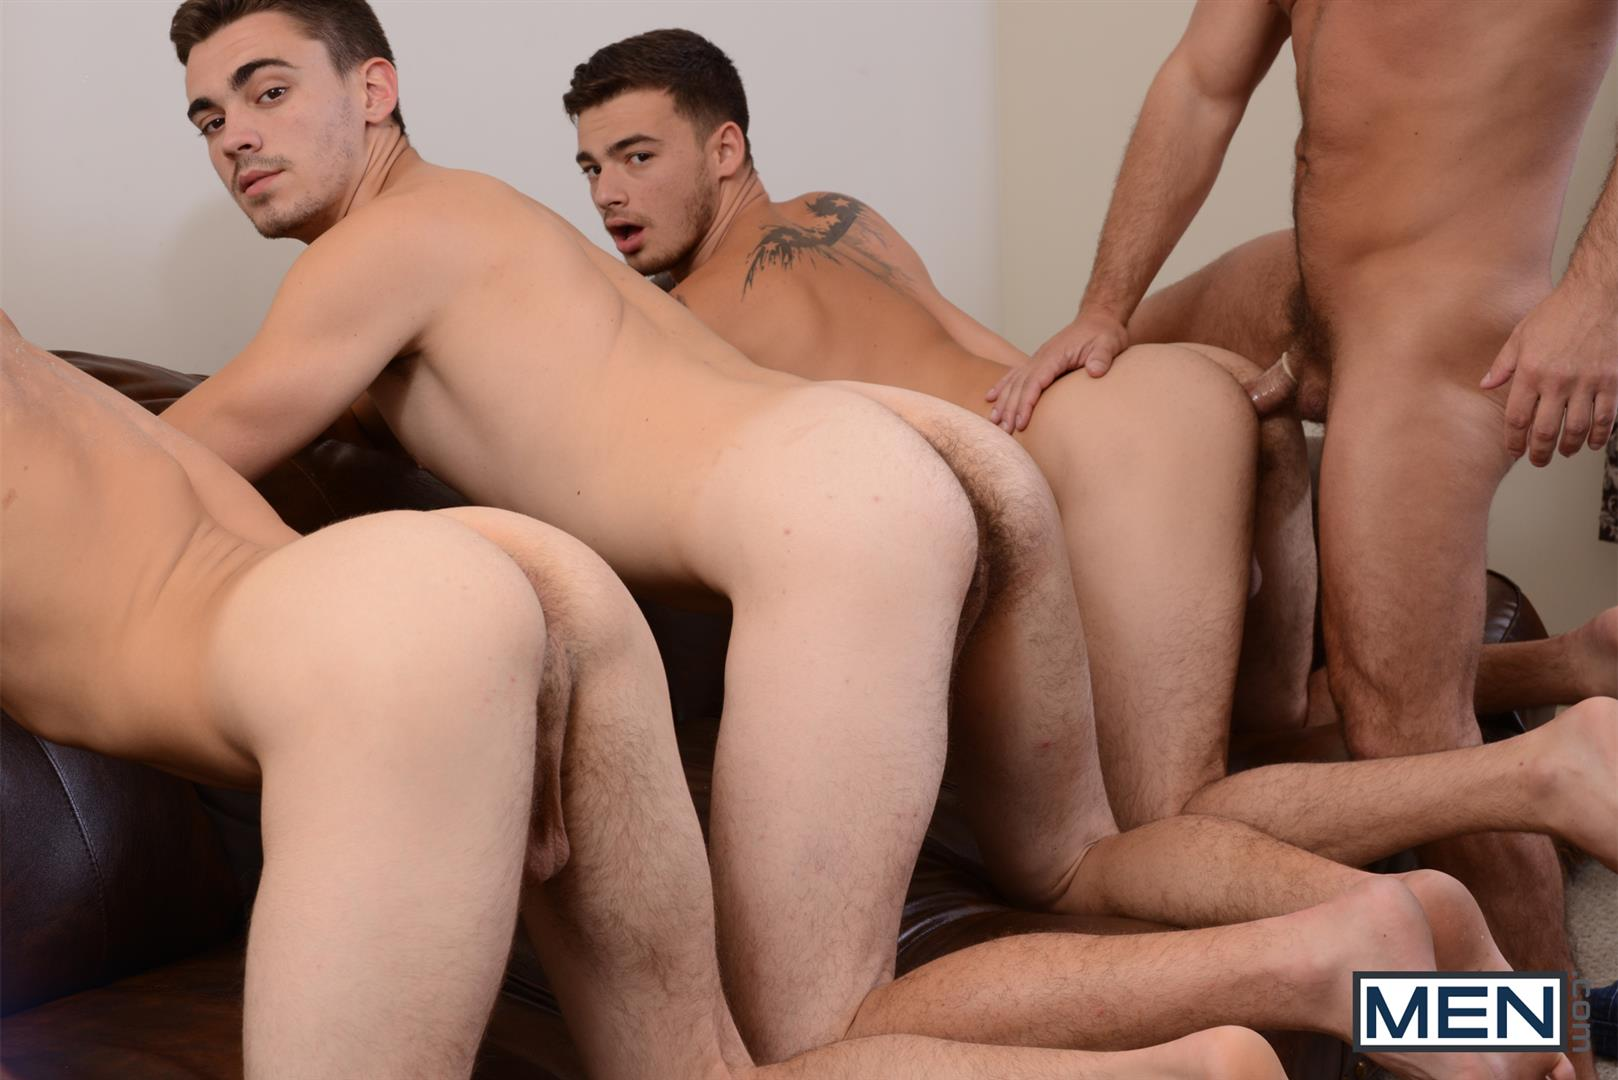 Men Jizz Orgy Asher Hawk and Dirk Caber and Johnny Rapid and Trevor Spade Triple Penetrated In the Ass Amateur Gay Porn 12